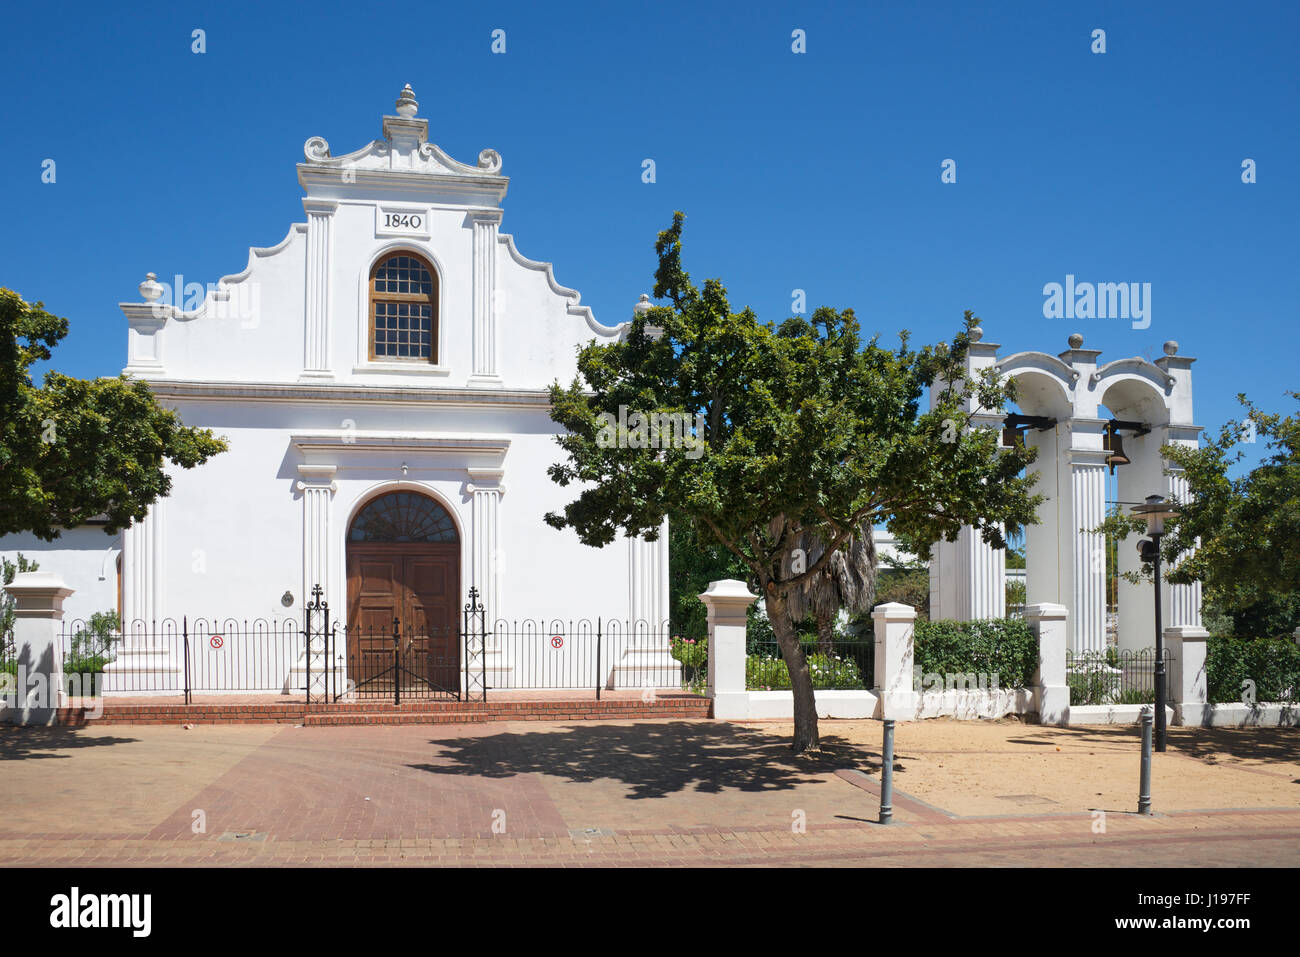 Rhenish Church example Cape Dutch architecture Stellenbosch Western Cape South Africa - Stock Image